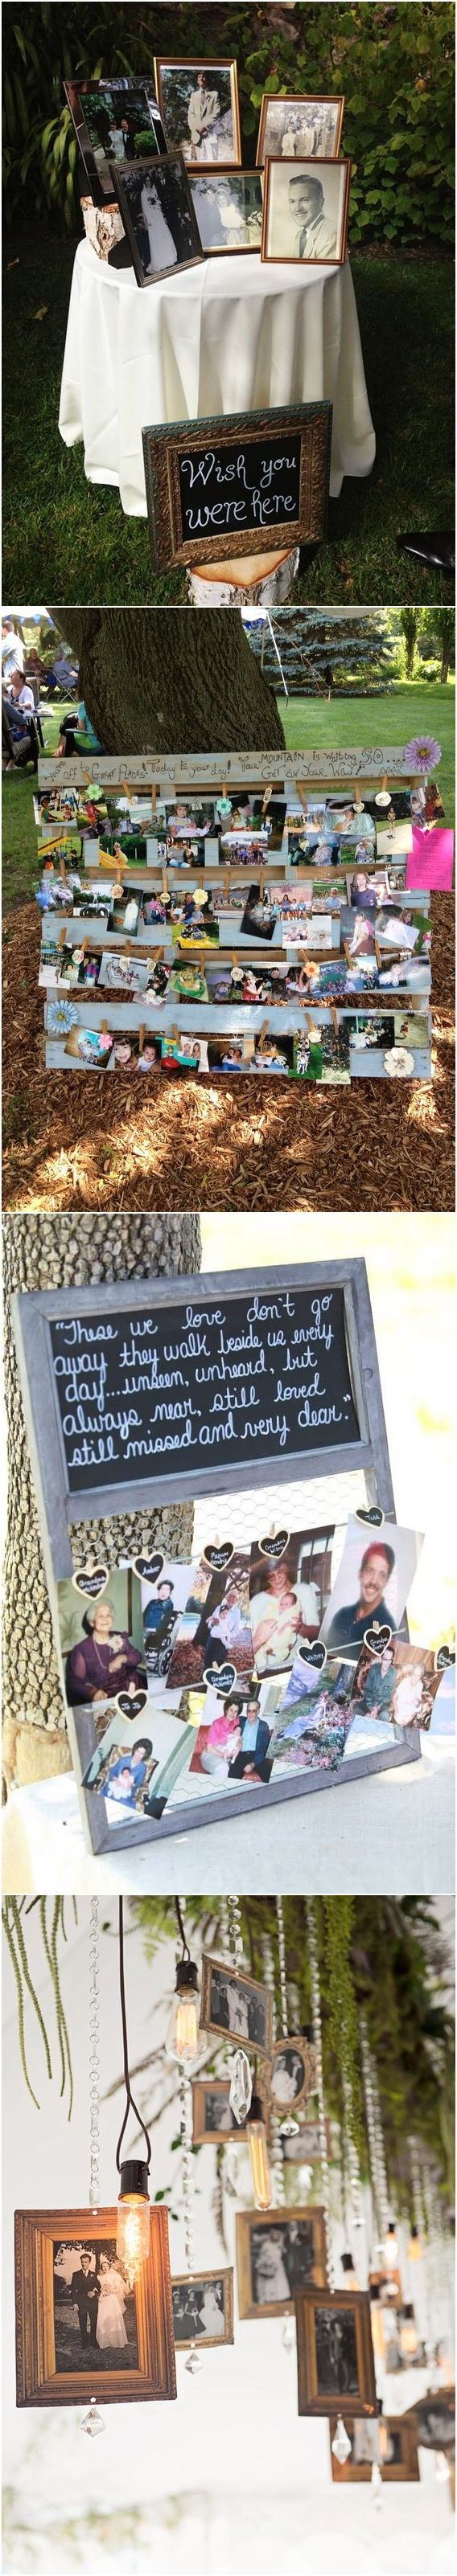 wedding photo display ideas youull want to try immediately